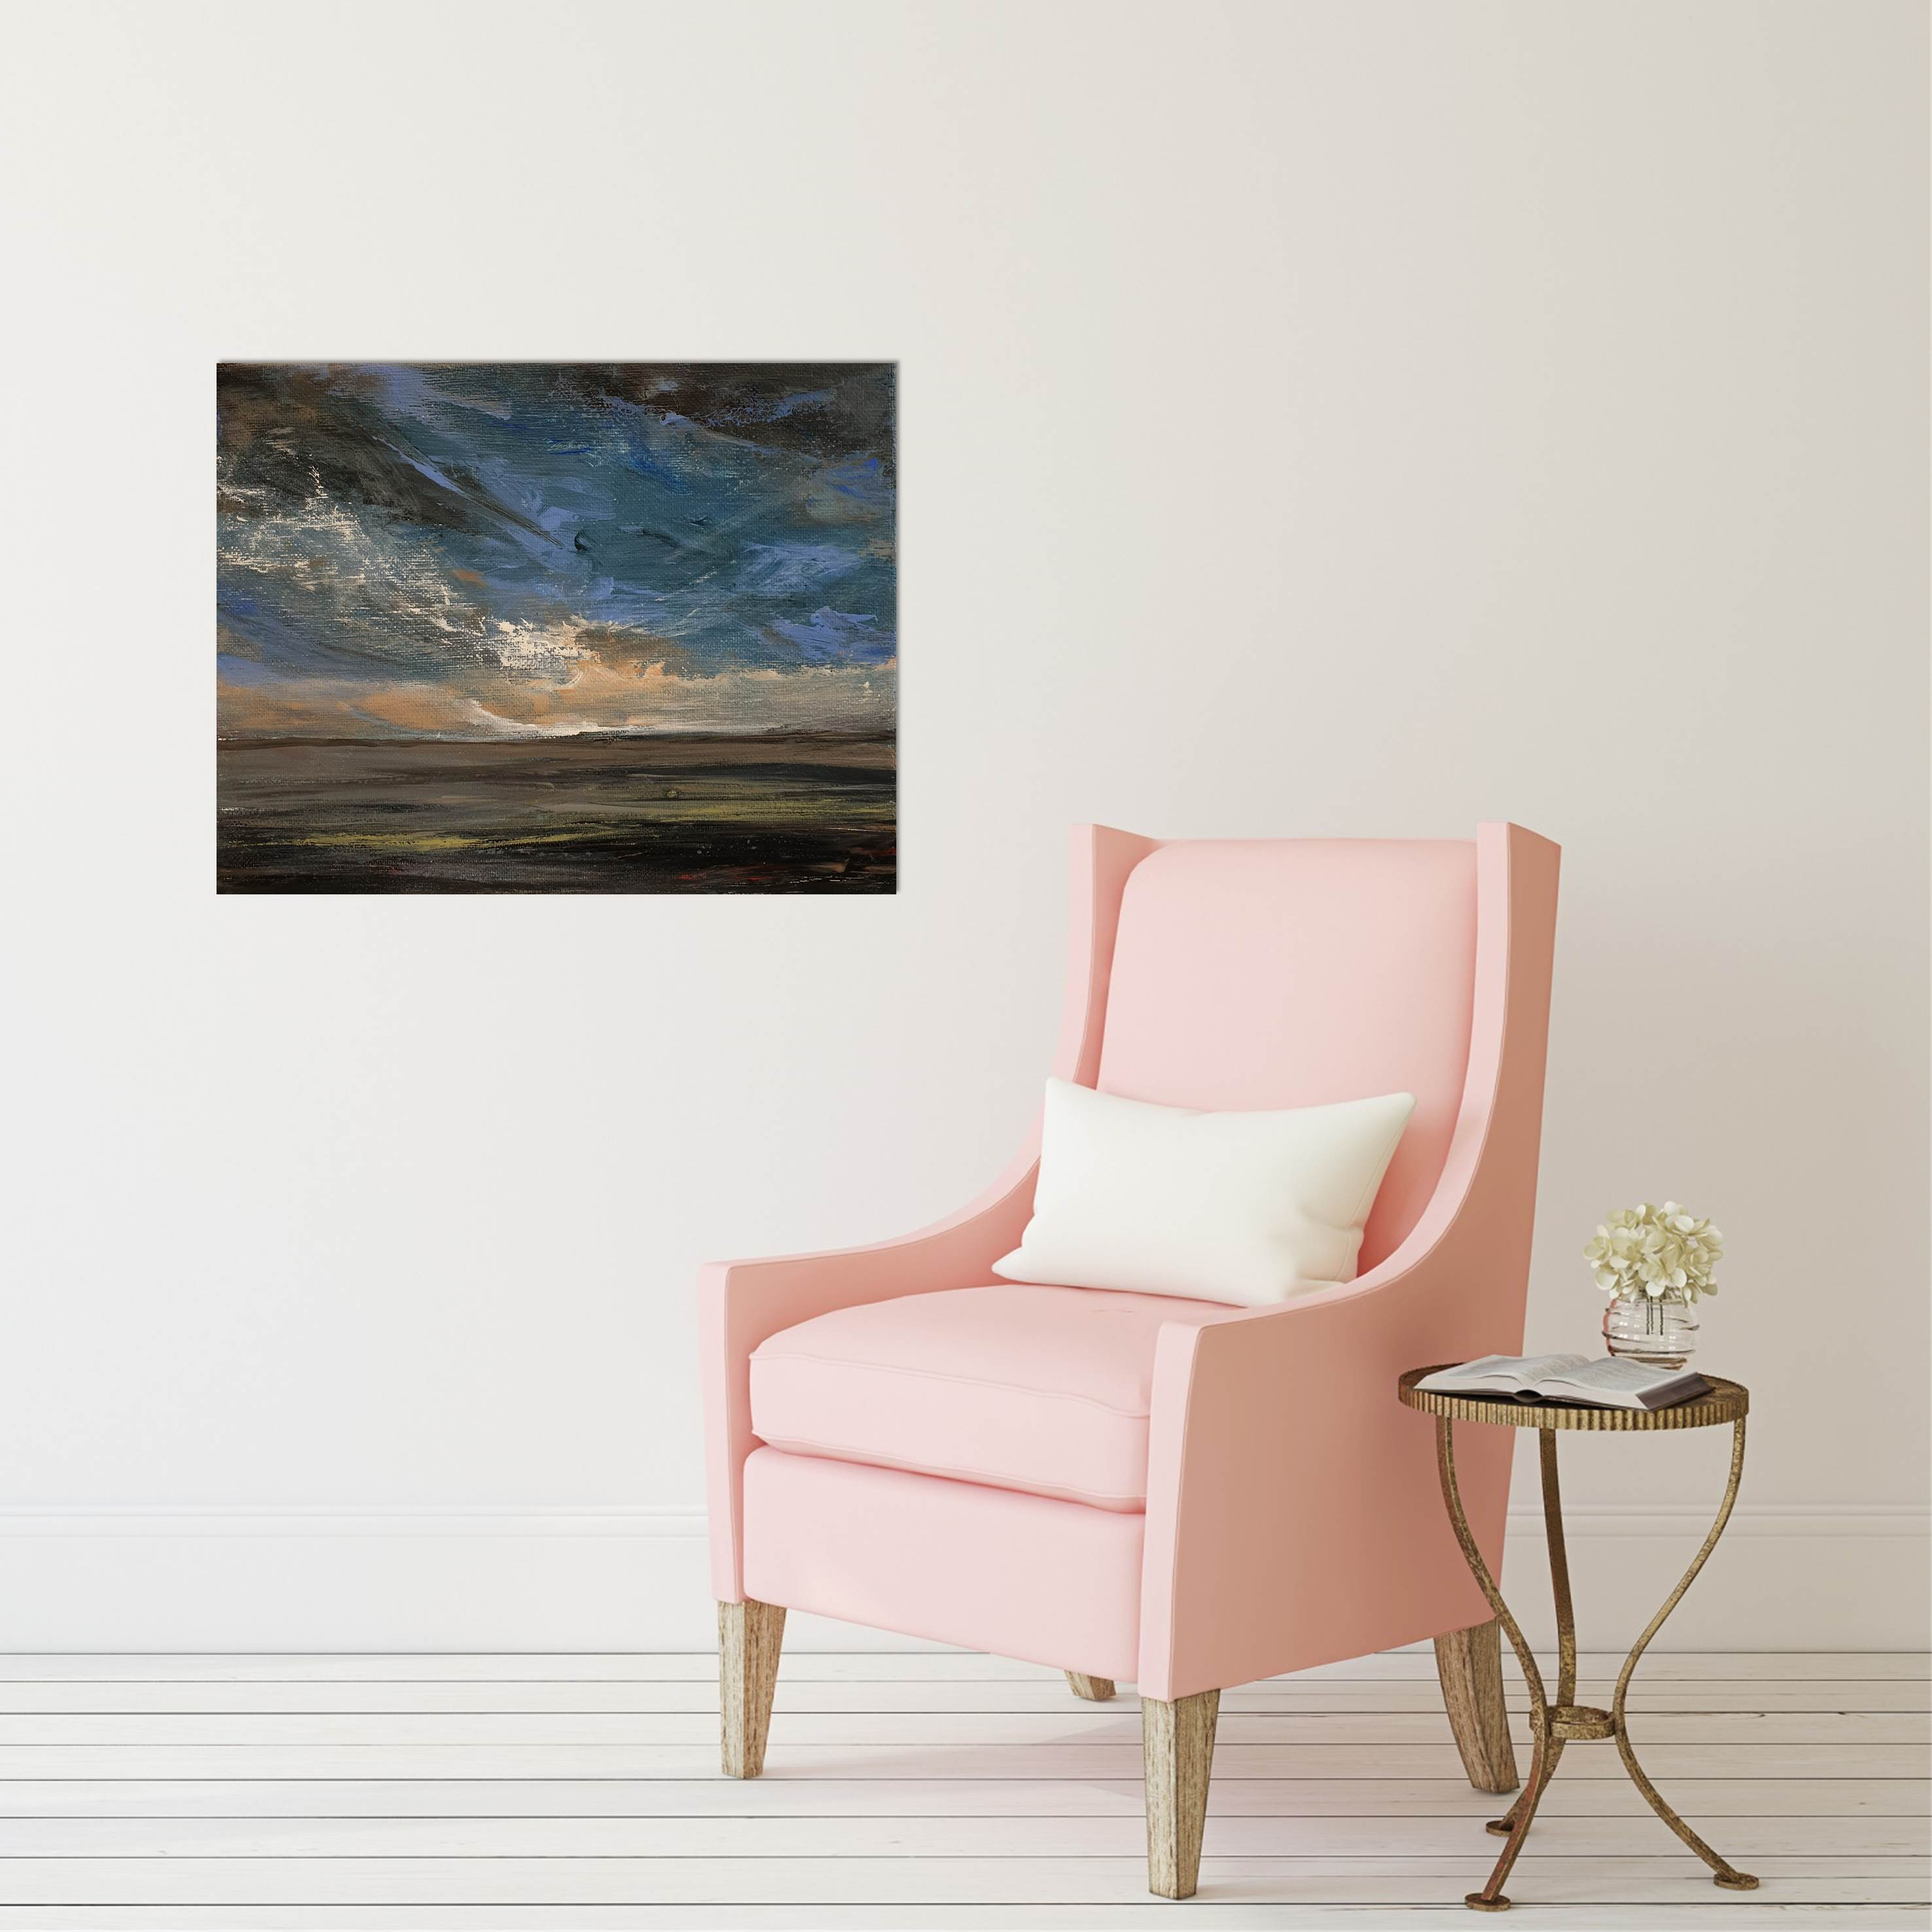 Glory With Pink Chair